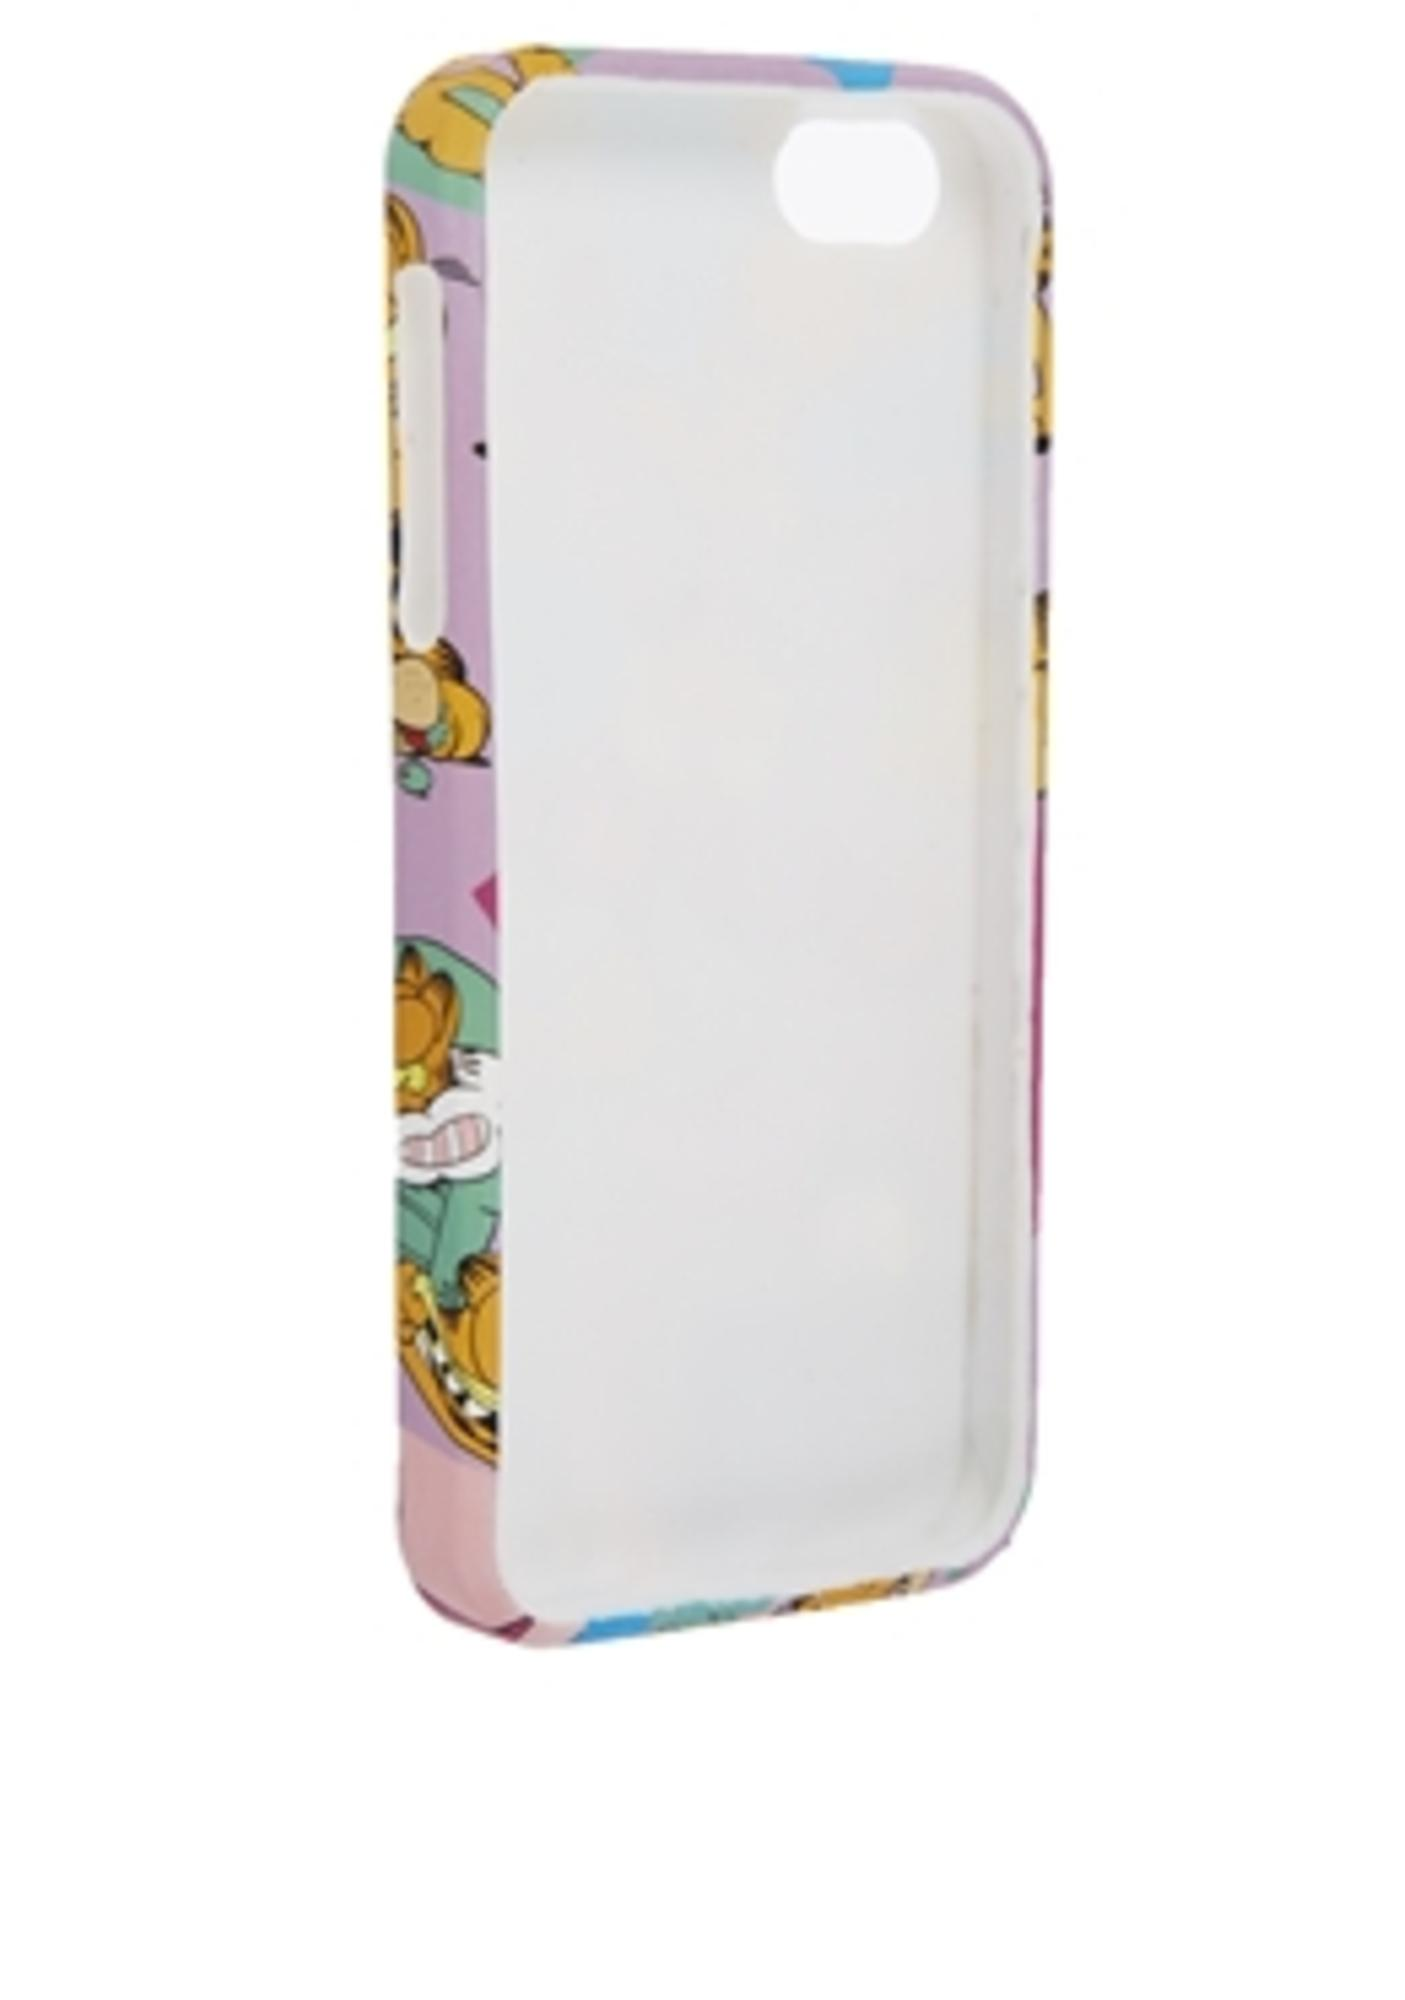 Lazy Oaf x Garfield iPhone 5 Case